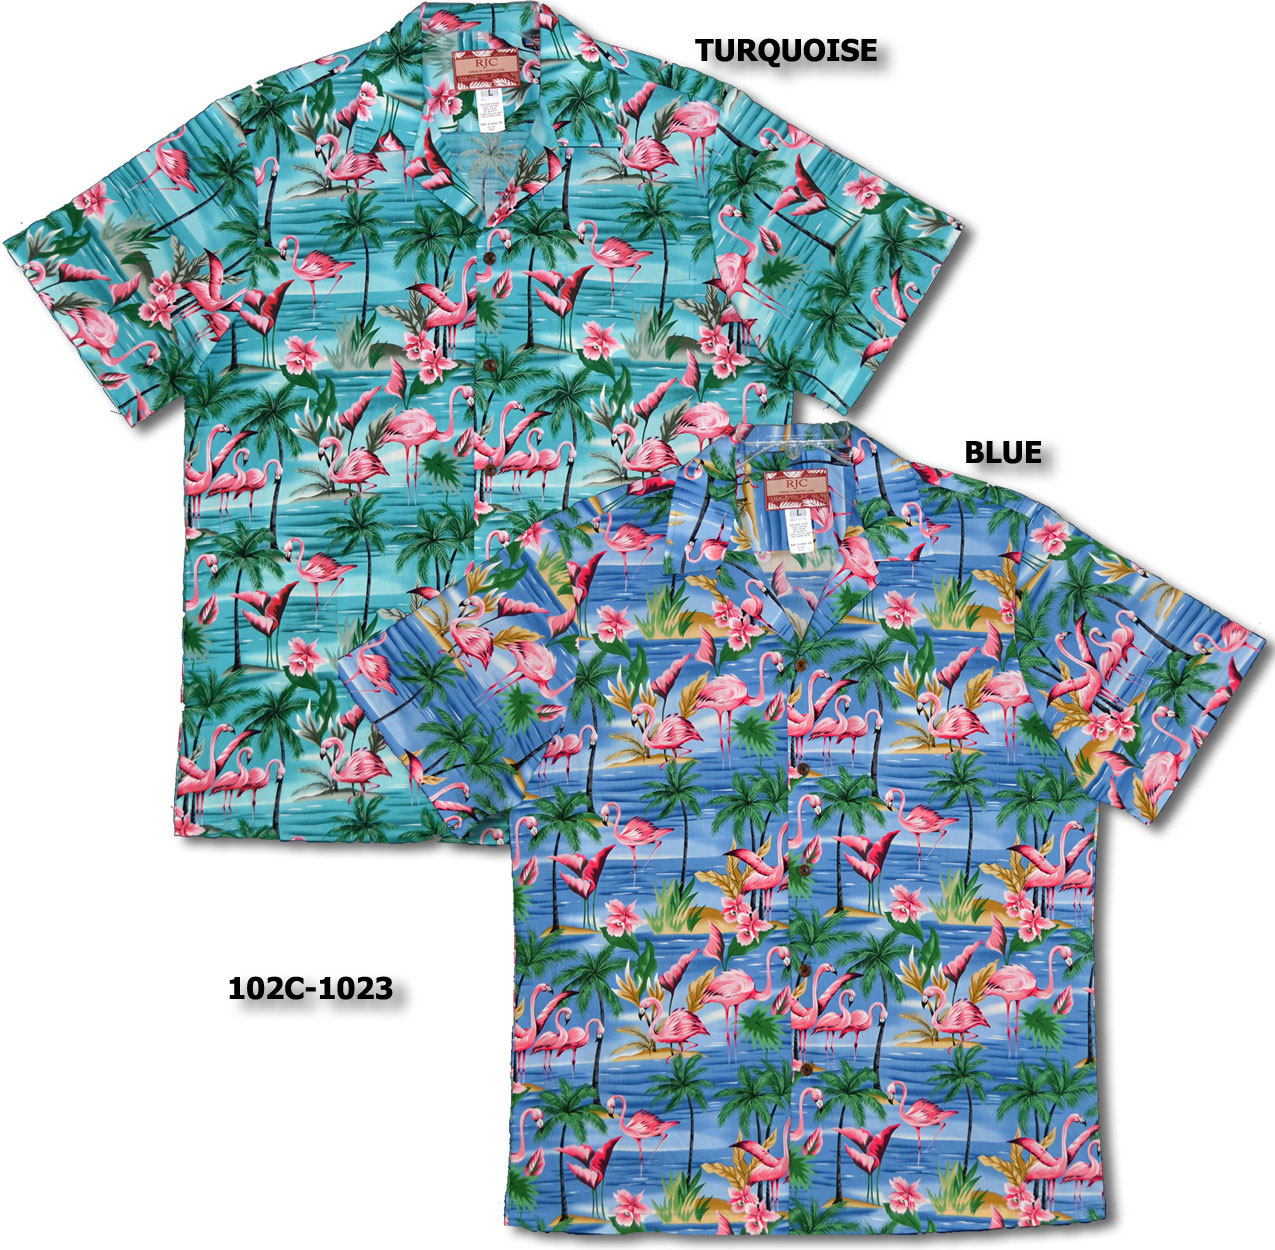 59e156ba Men's, Women's & Kids Pink Flamingo Made in Hawaii Clothing - Men's, Boy's,  Women's & Girl's Pink Flamingos Hawaiian Shirts, Dresses Aloha Apparel